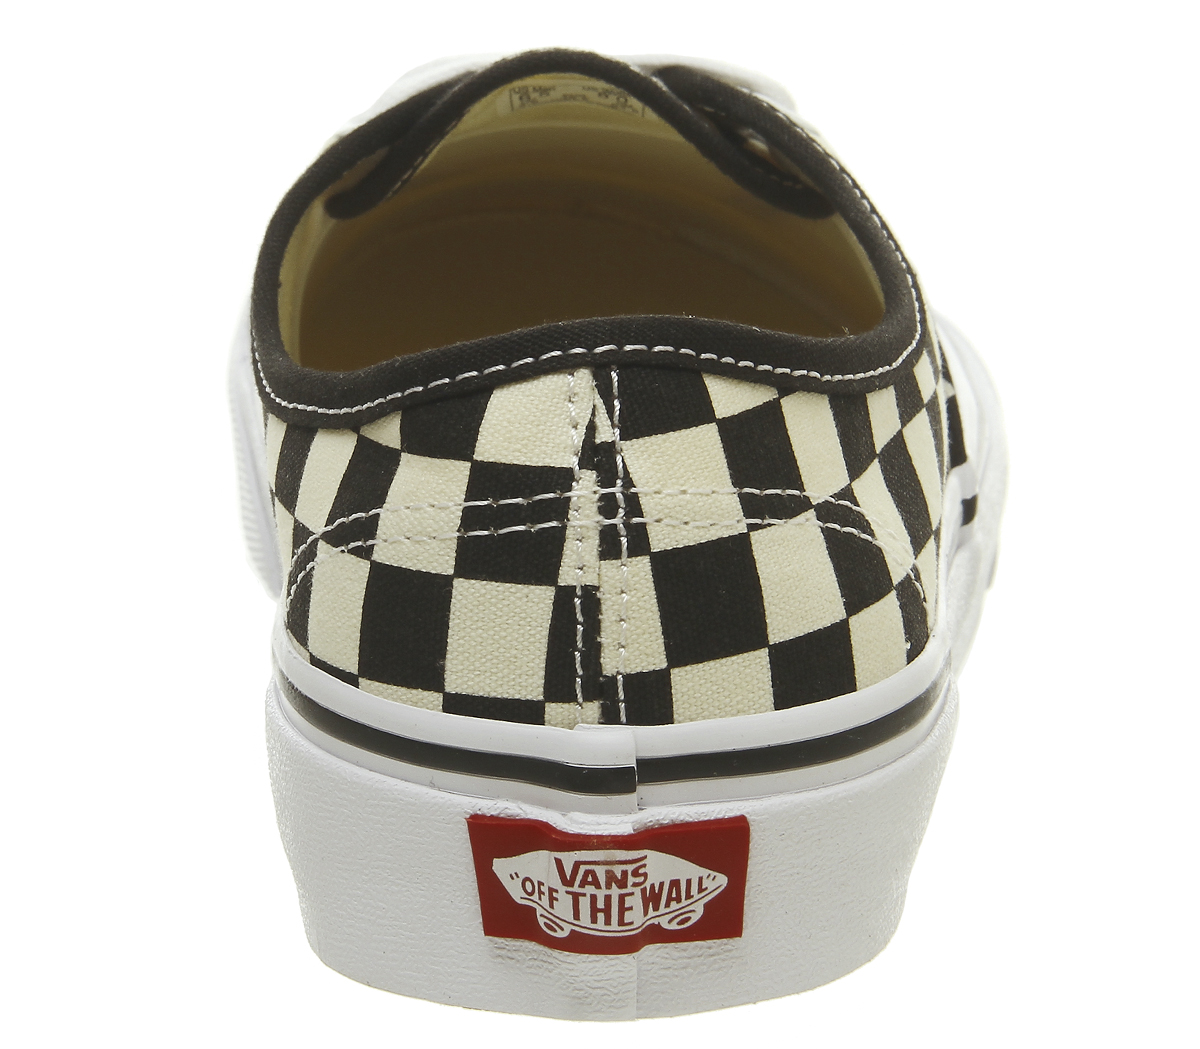 ade03a52f477b7 Sentinel Vans Authentic Trainers Black White Checker Golden Coast Trainers  Shoes